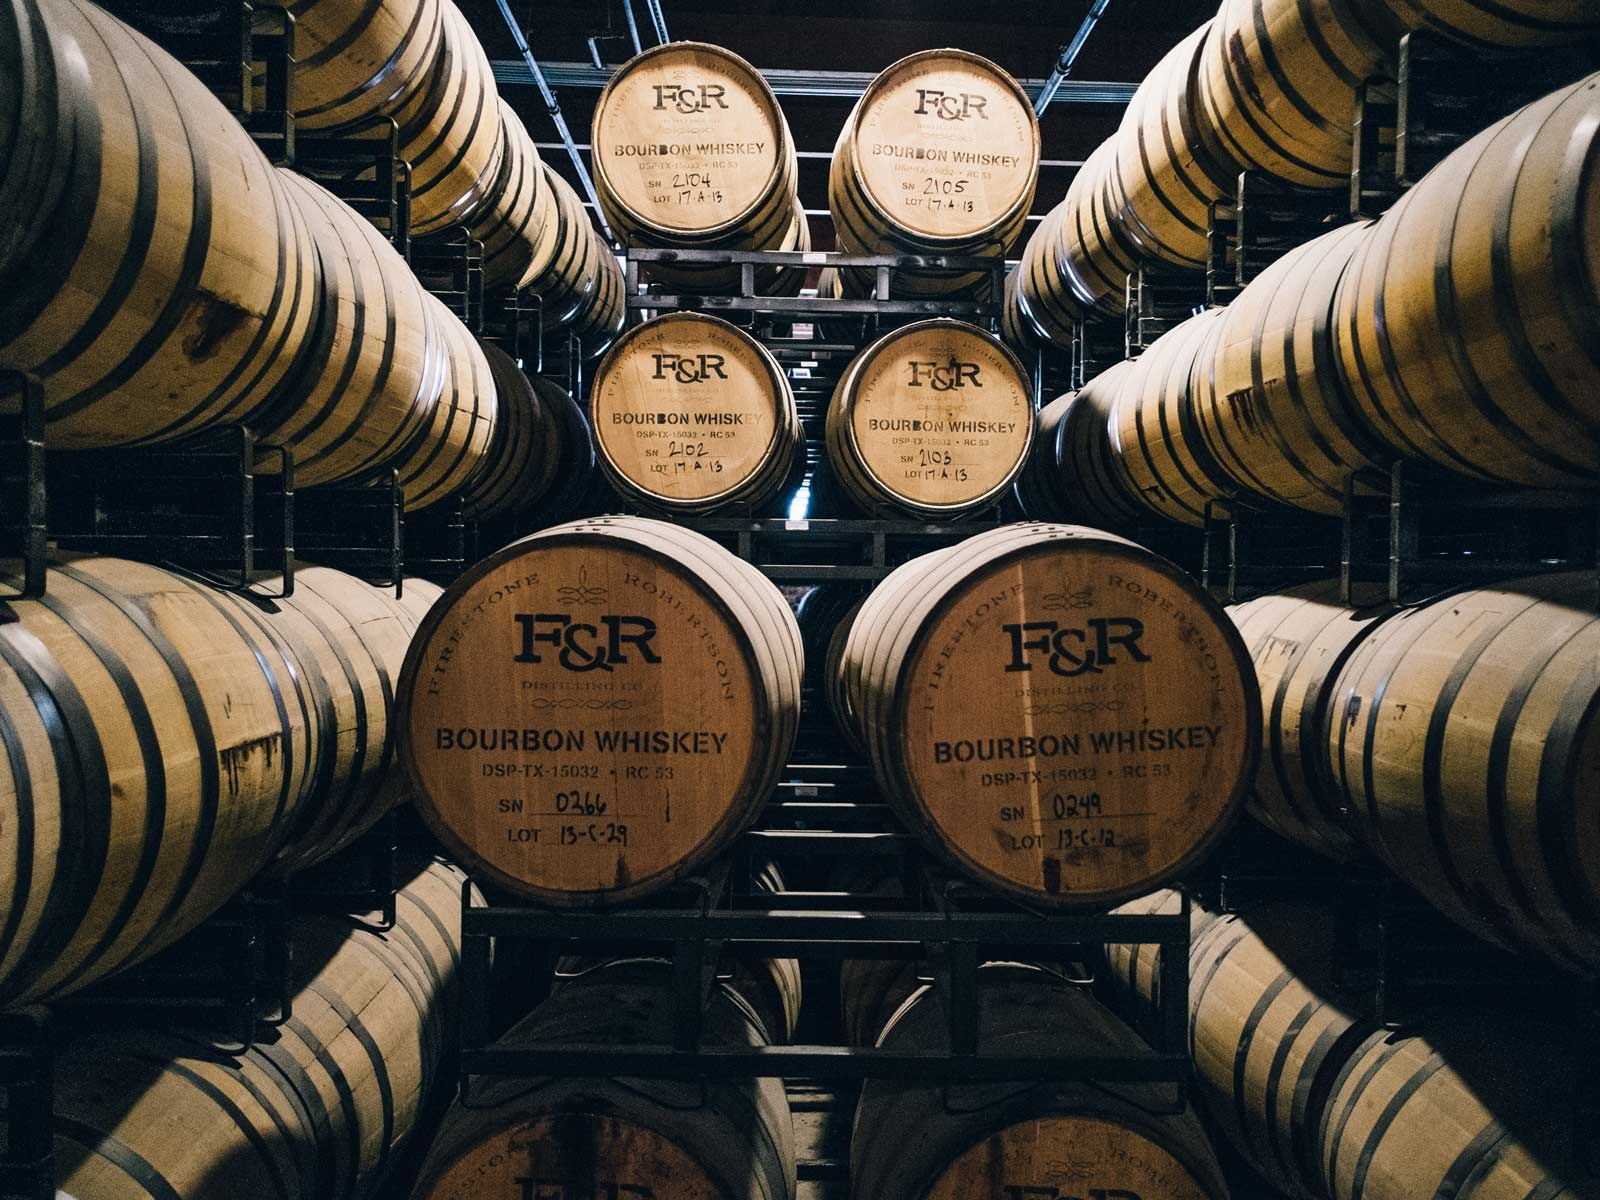 Photos: Inside the Largest Distillery West of the Mississippi